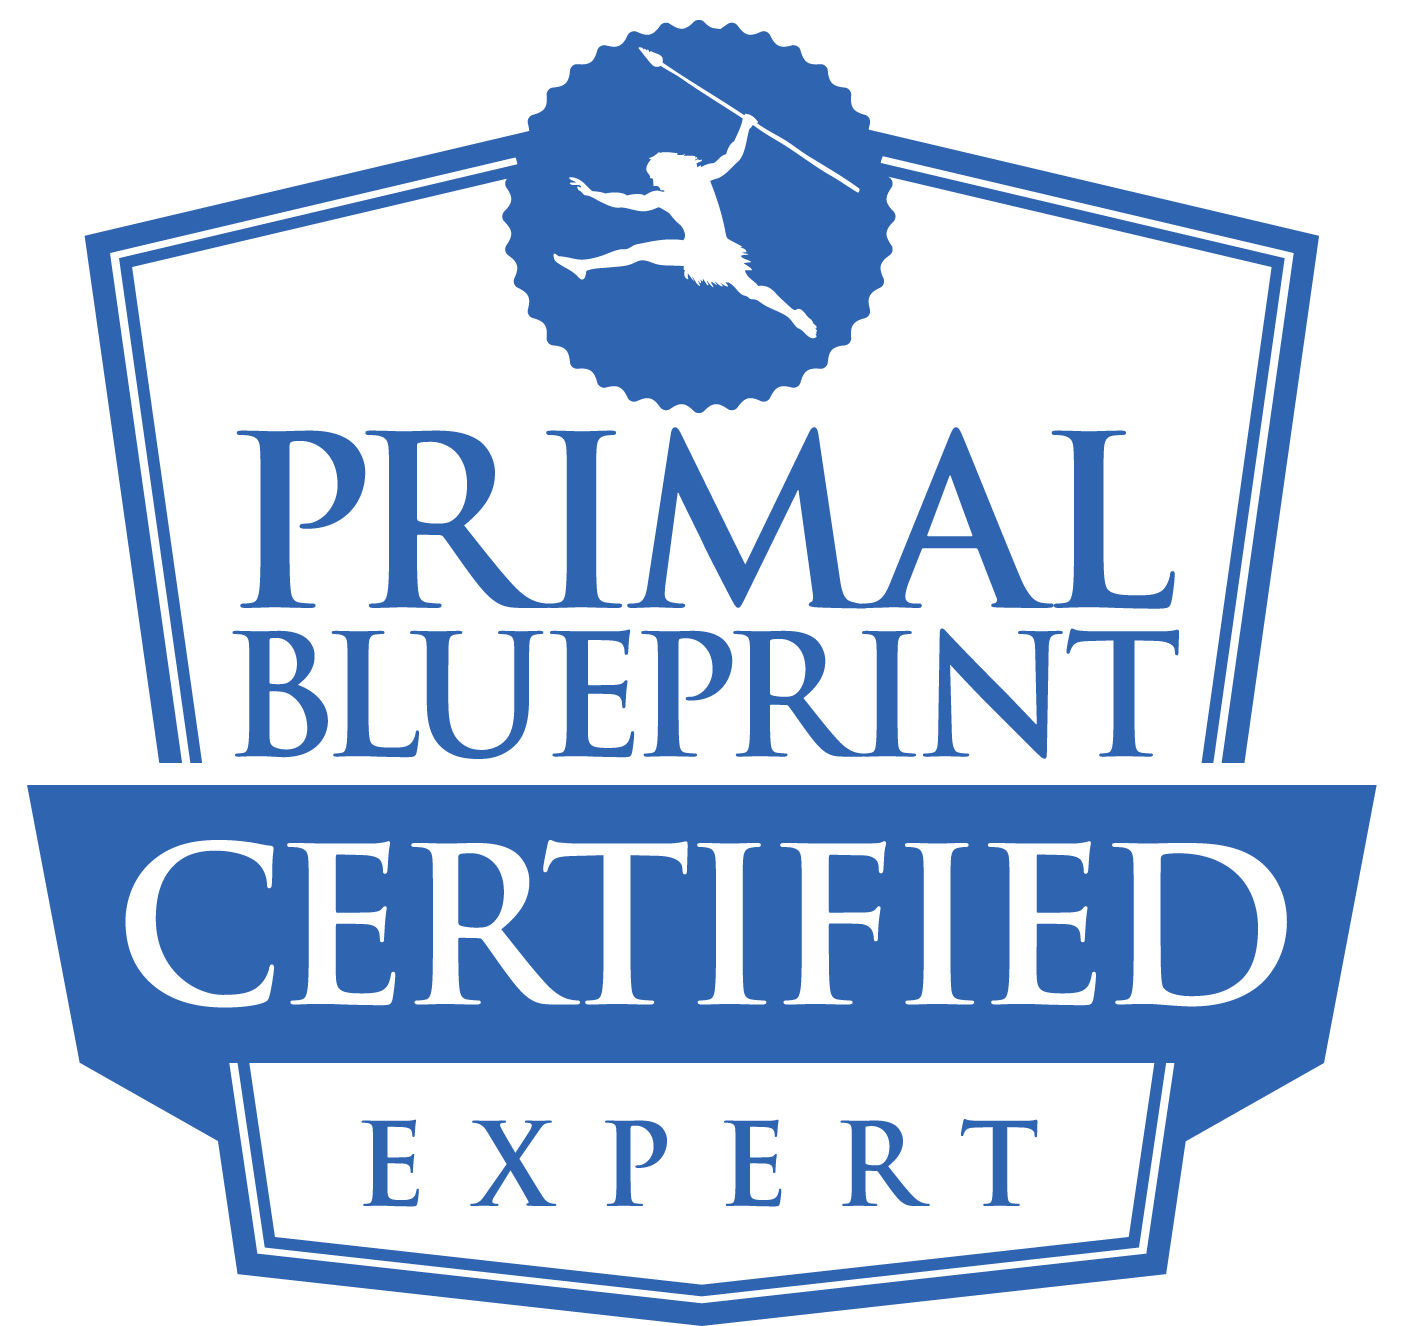 Primal blueprint testimonial holistic wellness for life representatives of the primal blueprint in the usa asked me if l would write a testimonial on why l applied to do the expert certification program and malvernweather Images